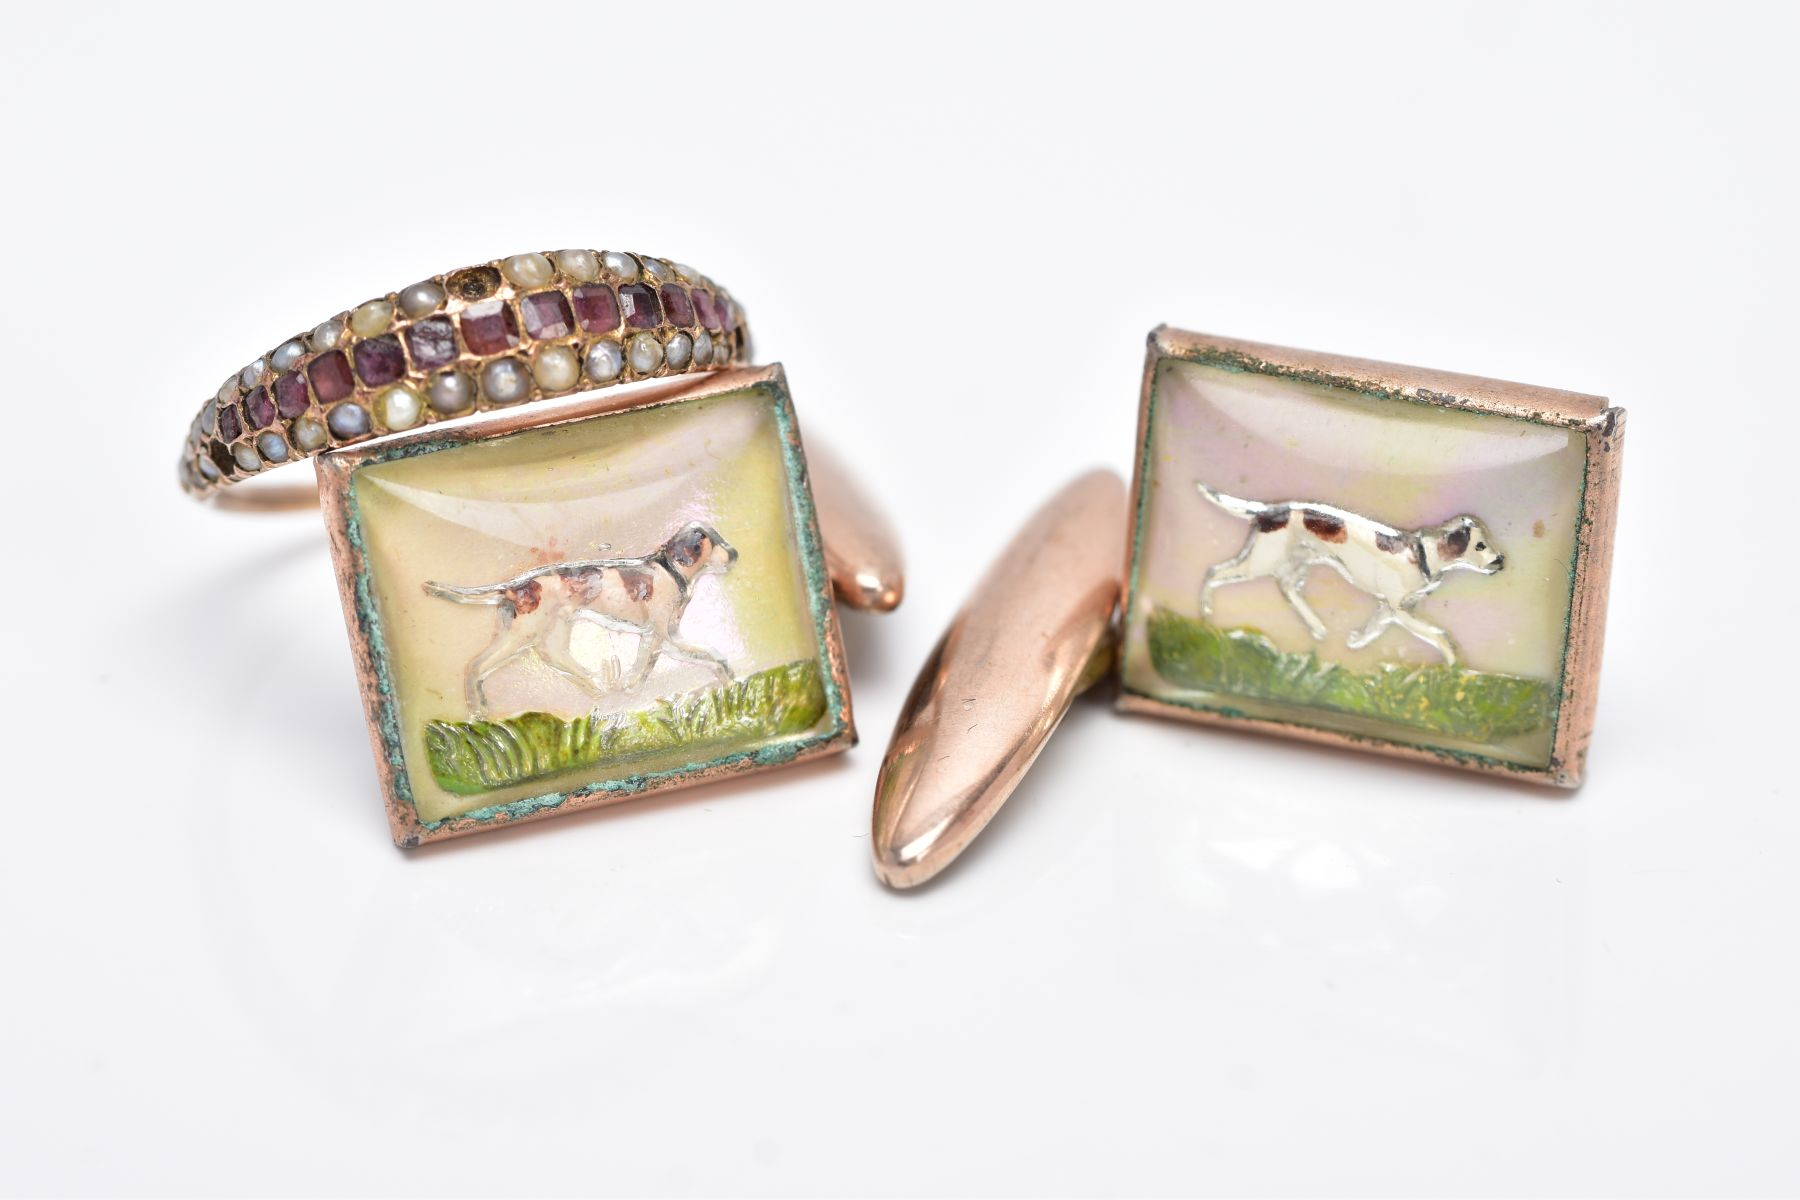 A PAIR OF ESSEX CRYSTAL STYLE GILT CUFFLINKS AND A VICTORIAN GARNET AND SPLIT PEARL RING, the